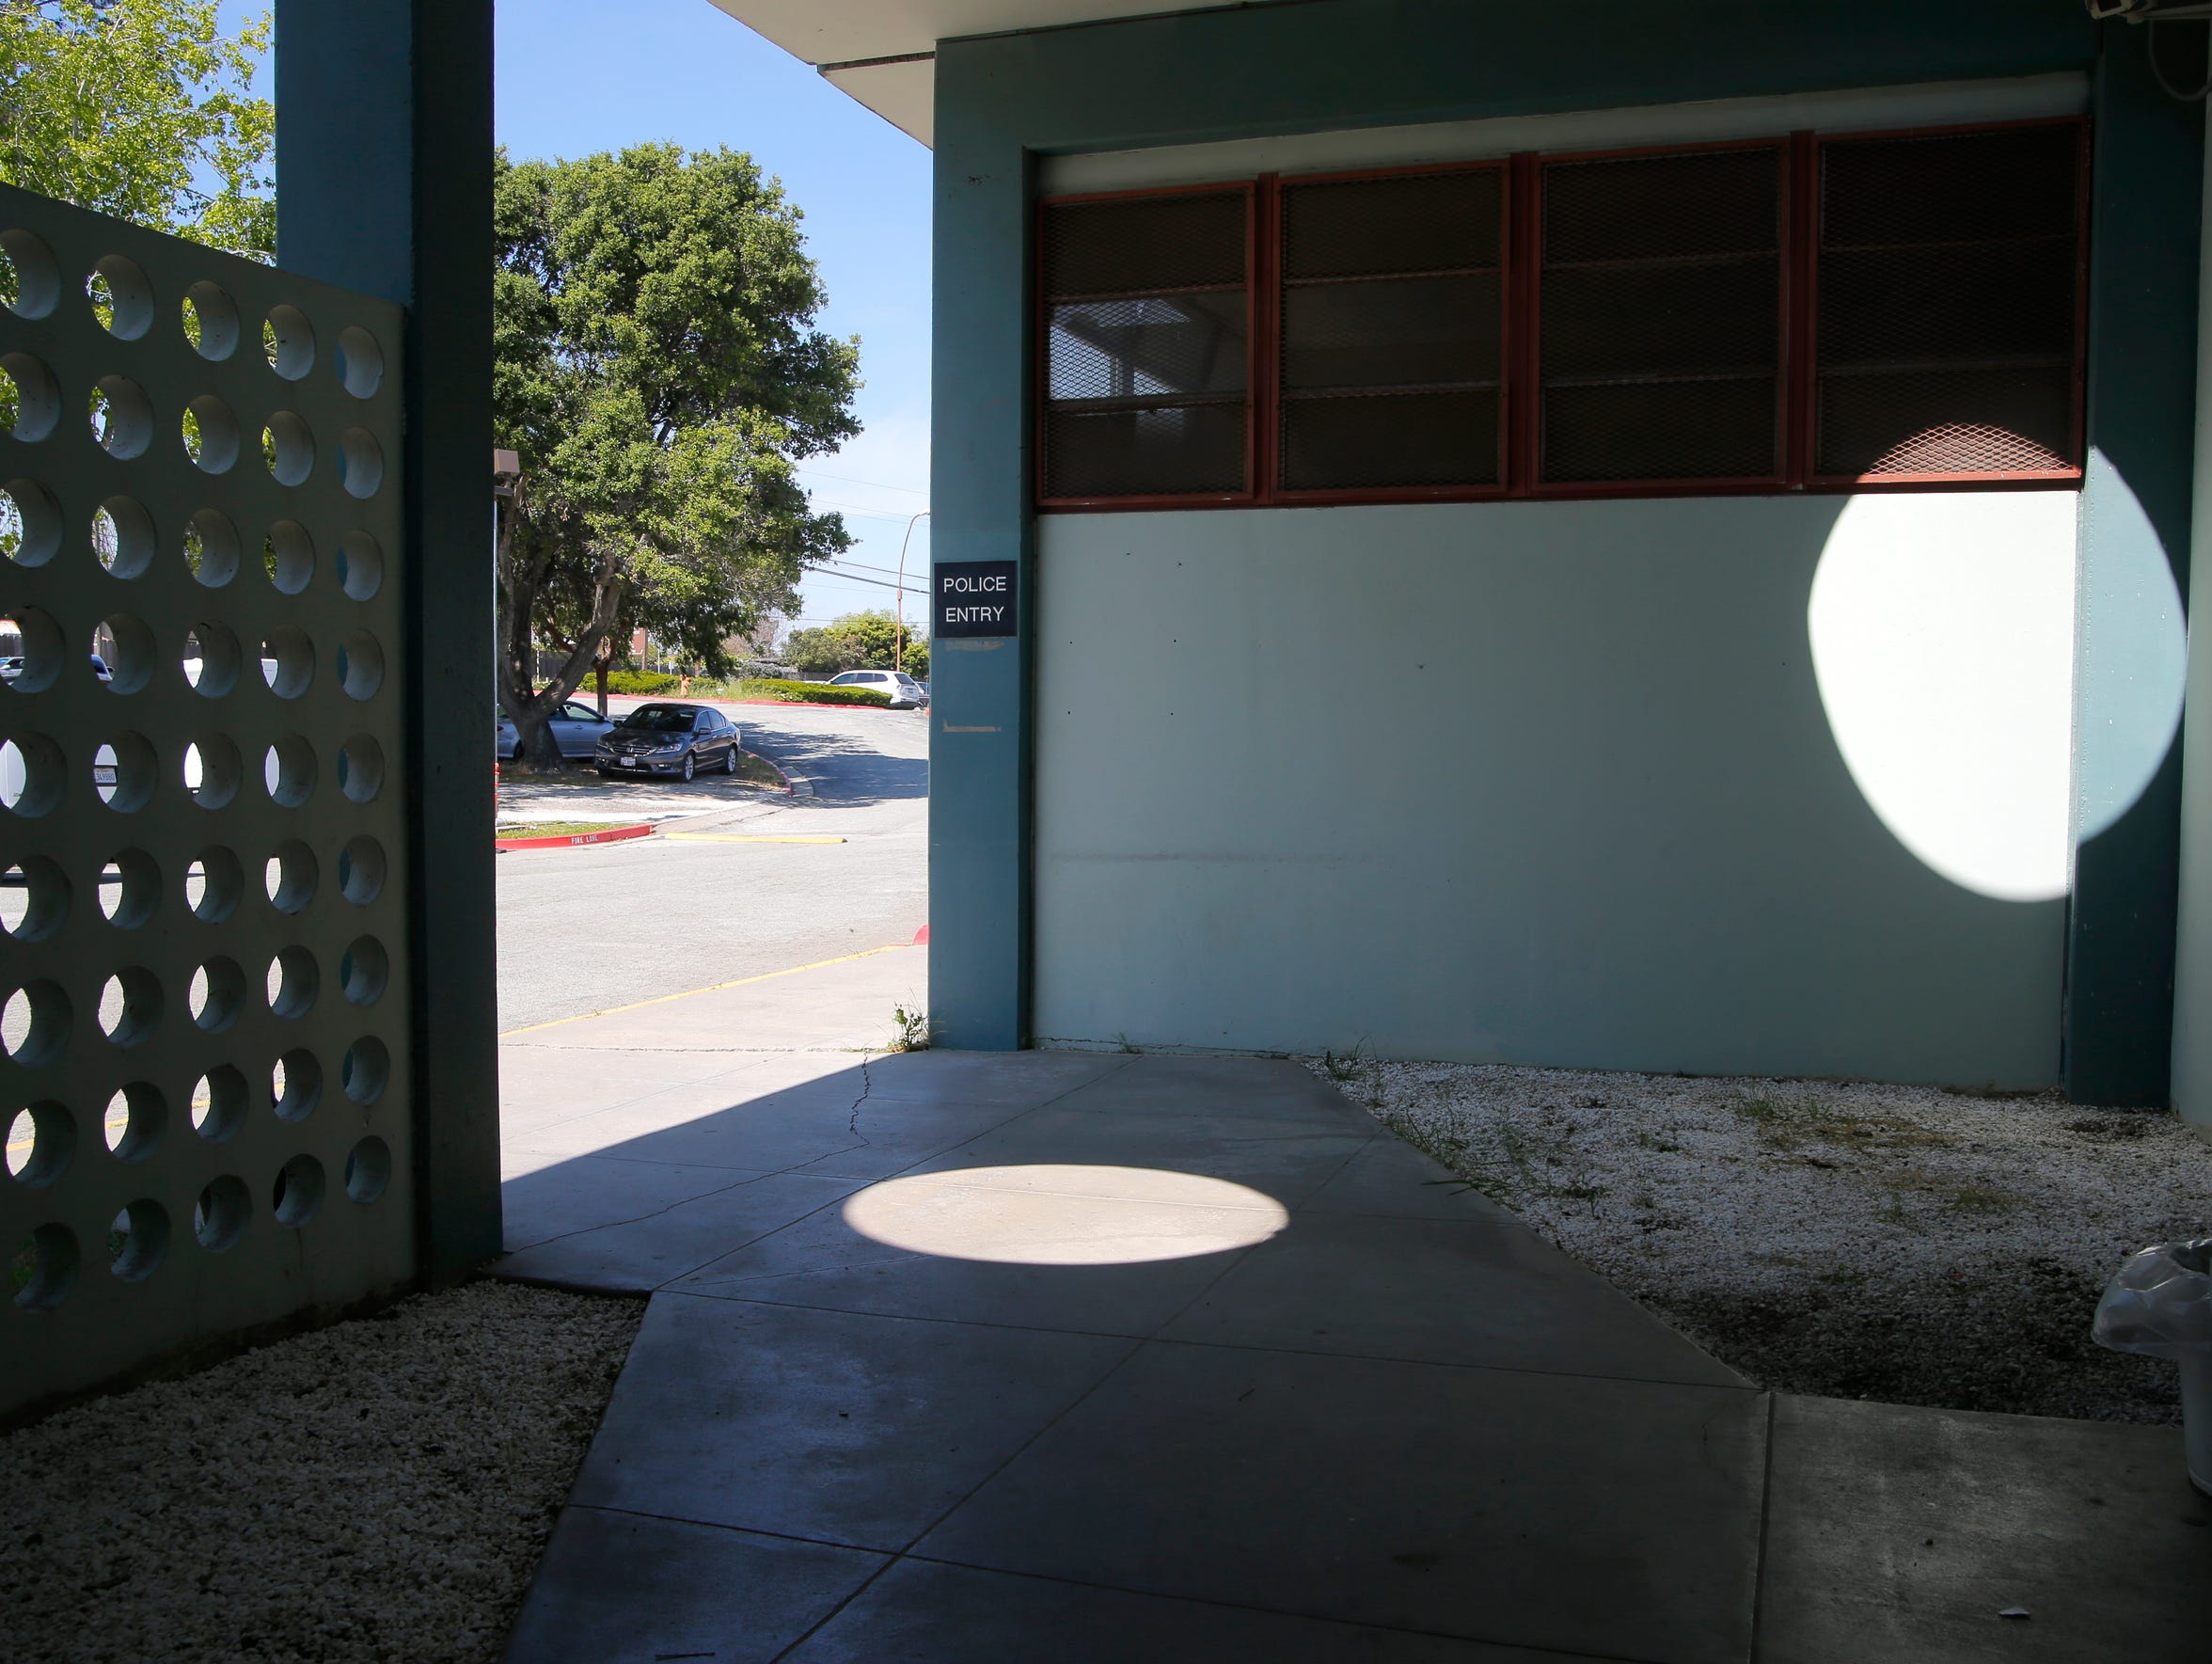 The existing juvenile hall does not have a sally port,